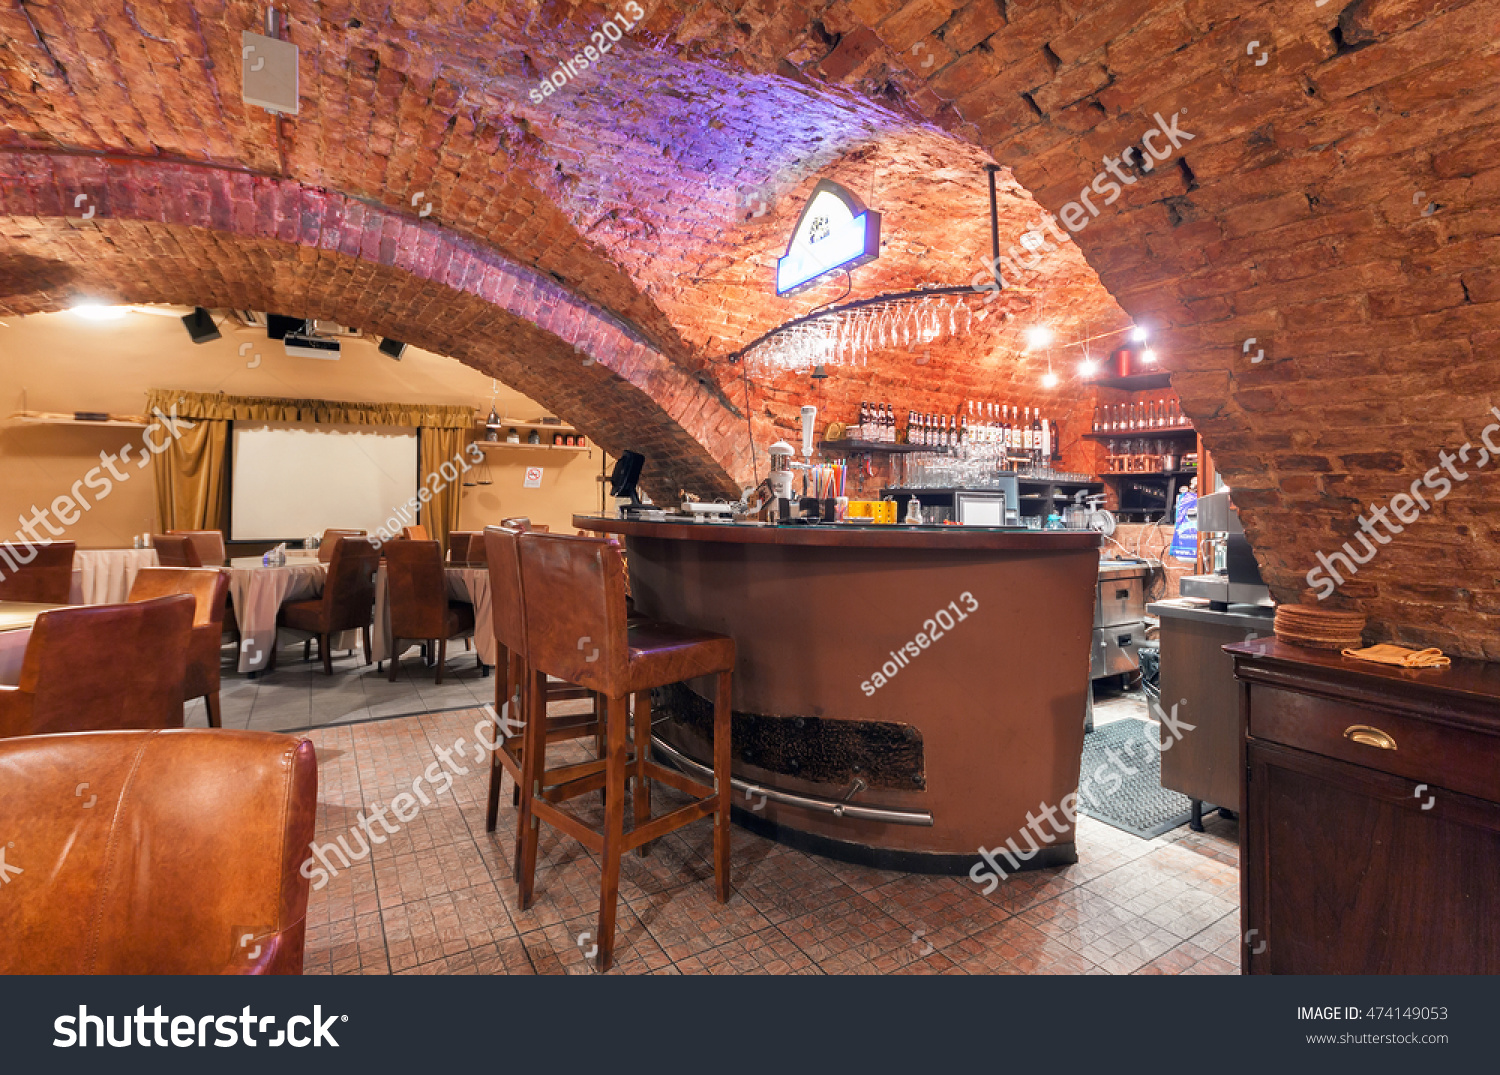 moscow july 2014 interior beer restaurant stock photo 474149053